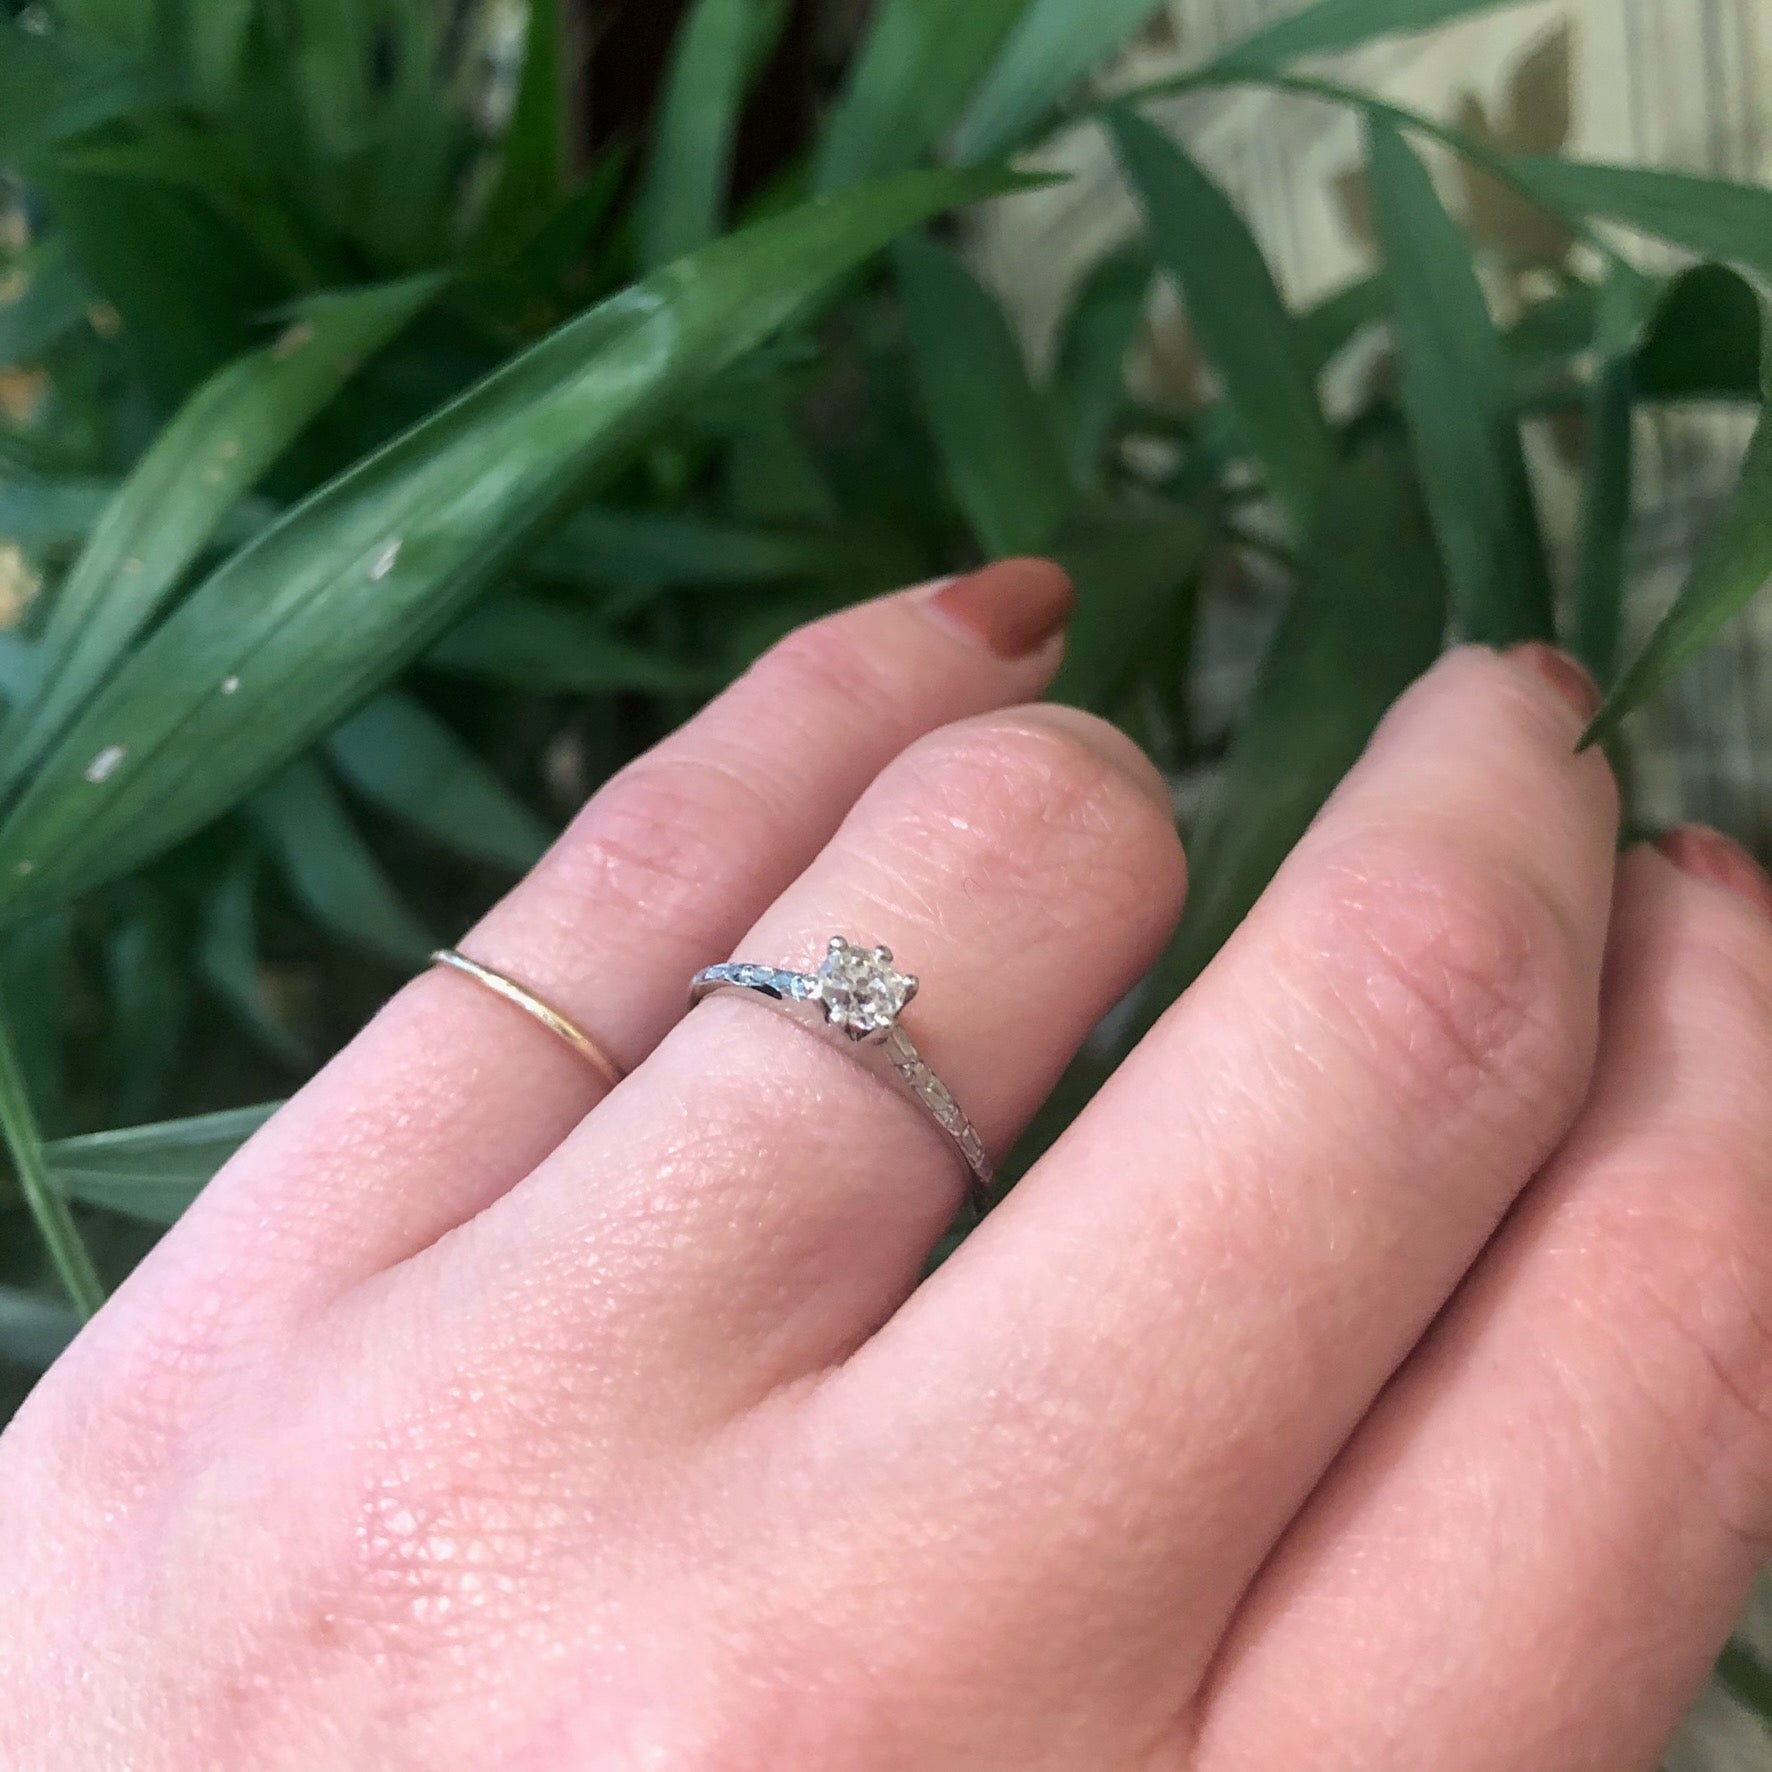 Vintage Forget Me Not Old Mine Diamond Solitaire